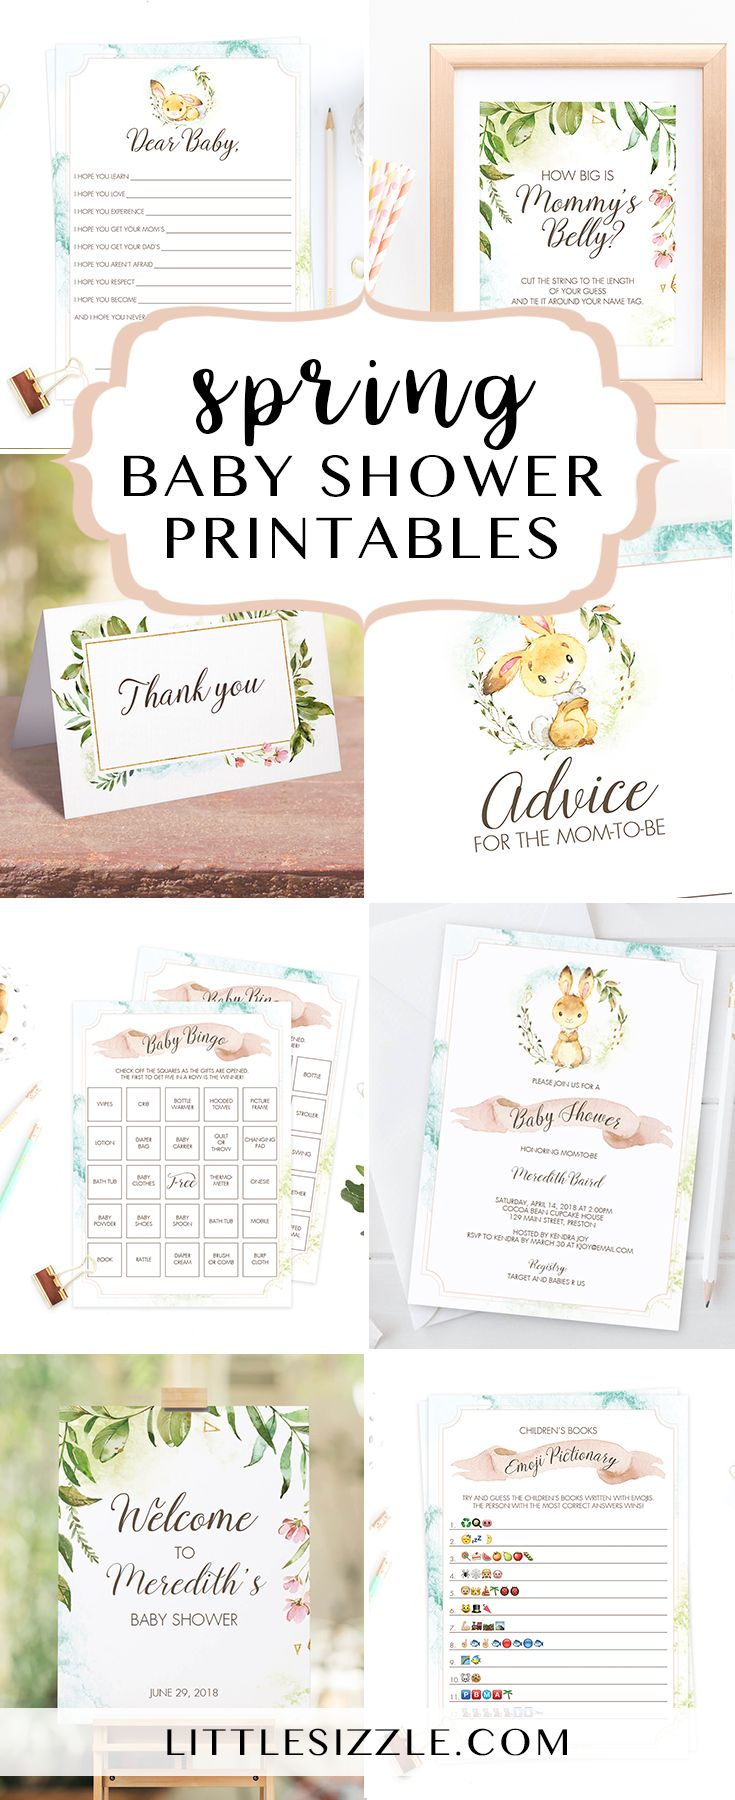 Spring baby shower ideas by LittleSizzle. Printable spring themed baby shower games, spring shower invitation templates and printable spring garden baby shower decor. Whether you are hosting a baby girl shower or a gender neutral baby shower these spring inspired baby shower printables with a cute little bunny, blends of pink and green and watercolor background will set the tone!#babyshowerthemes#babyshowerideas#DIY#printables#spring#watercolor#bunny#babyshowergames#invitationtemplates